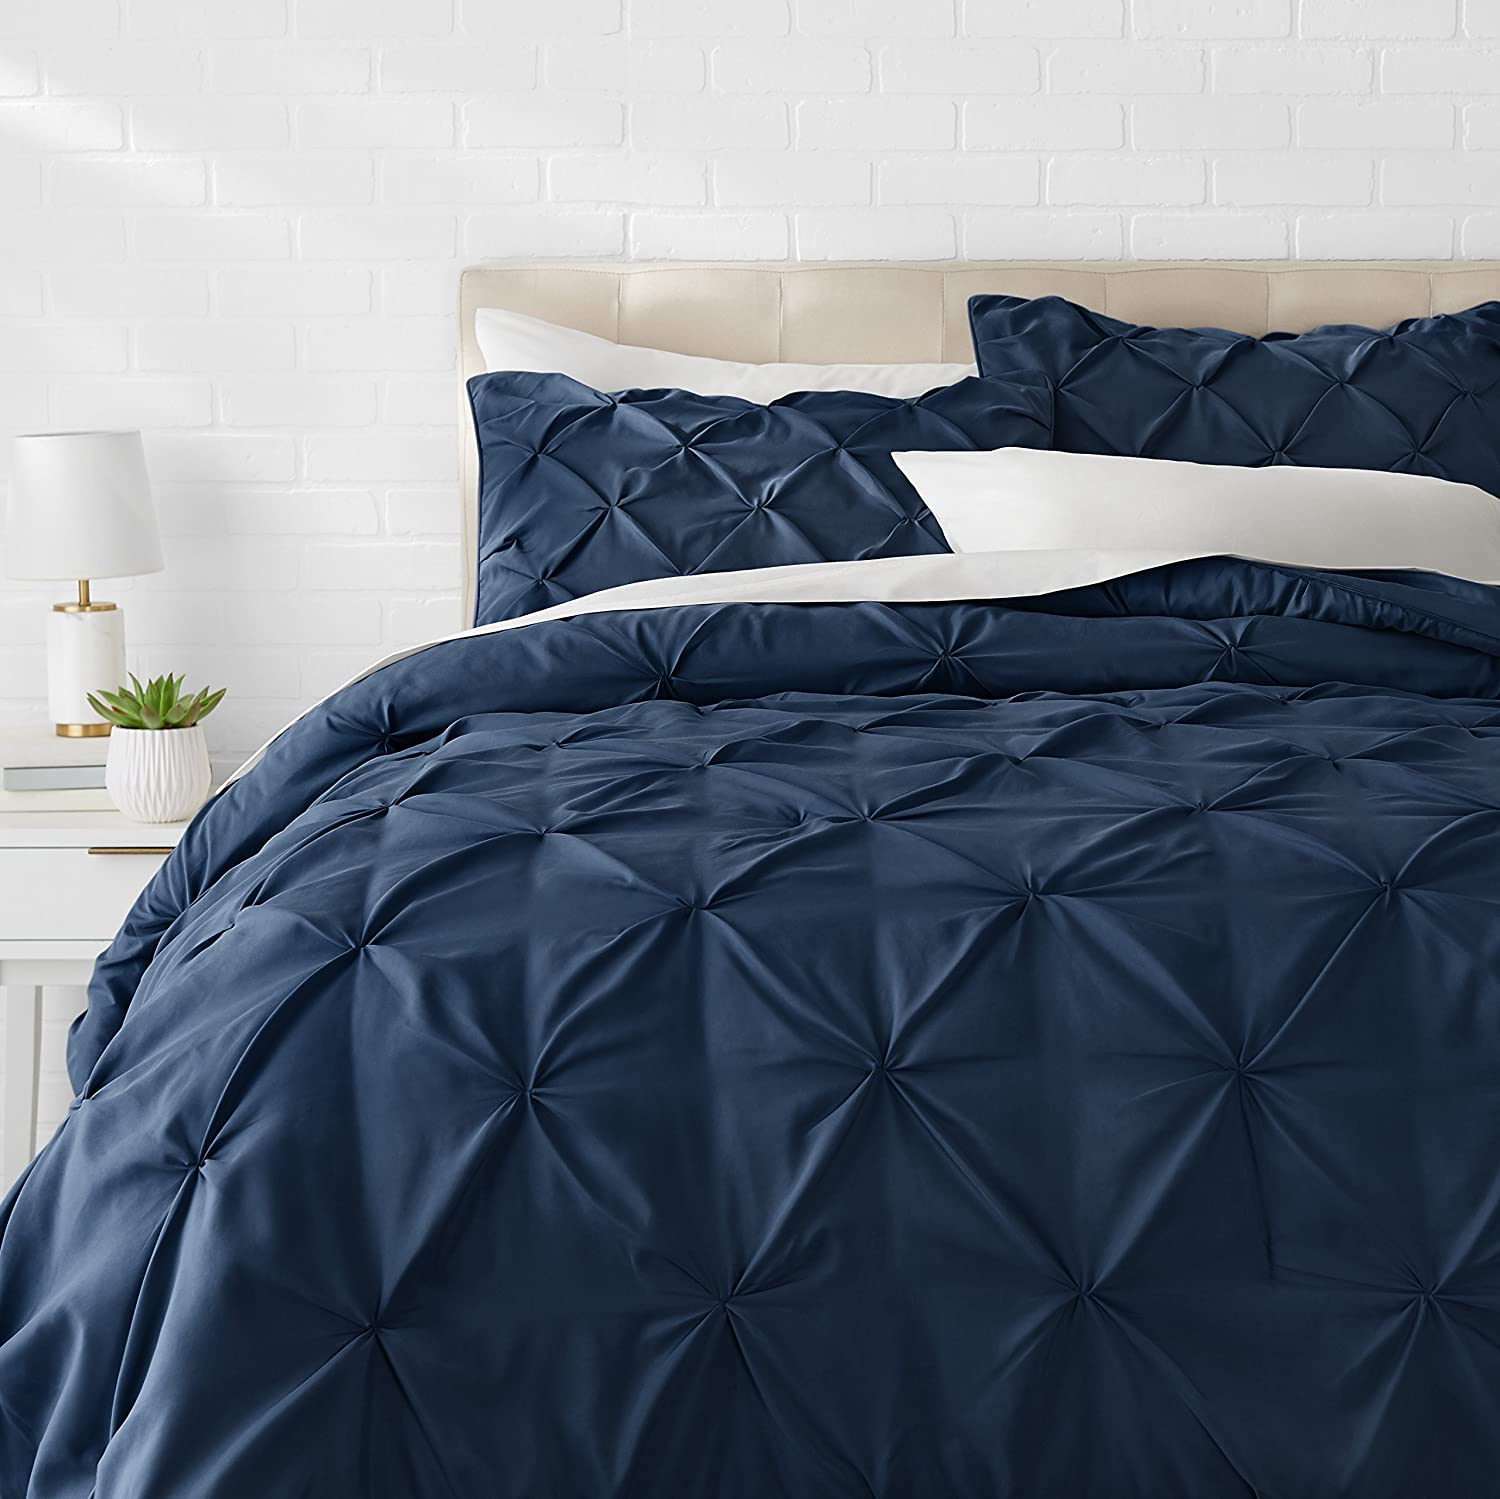 AmazonBasics Pinch Pleat Comforter Set - Full/Queen, Navy Blue